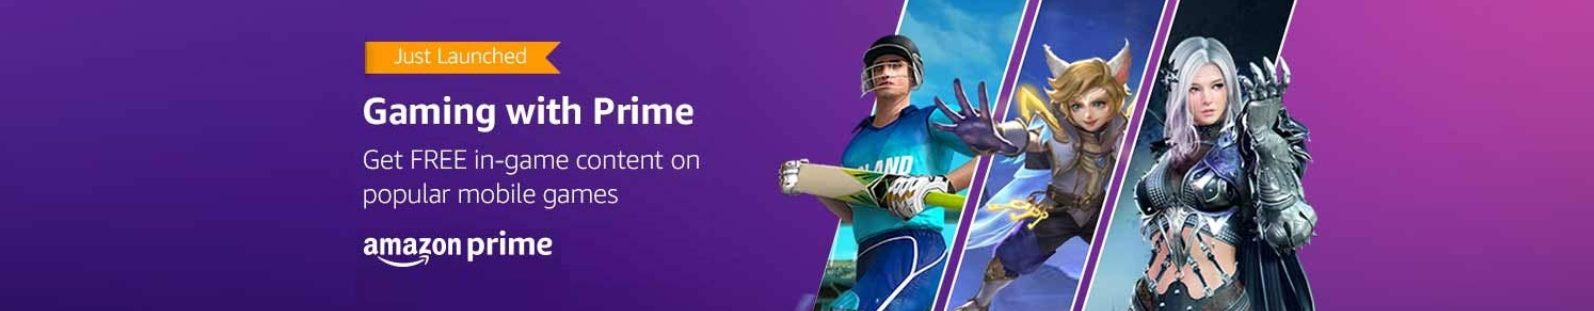 Amazon's Prime Gaming Pack In India, Free In-Game Content Exclusively For Prime Subscribers_Check Out